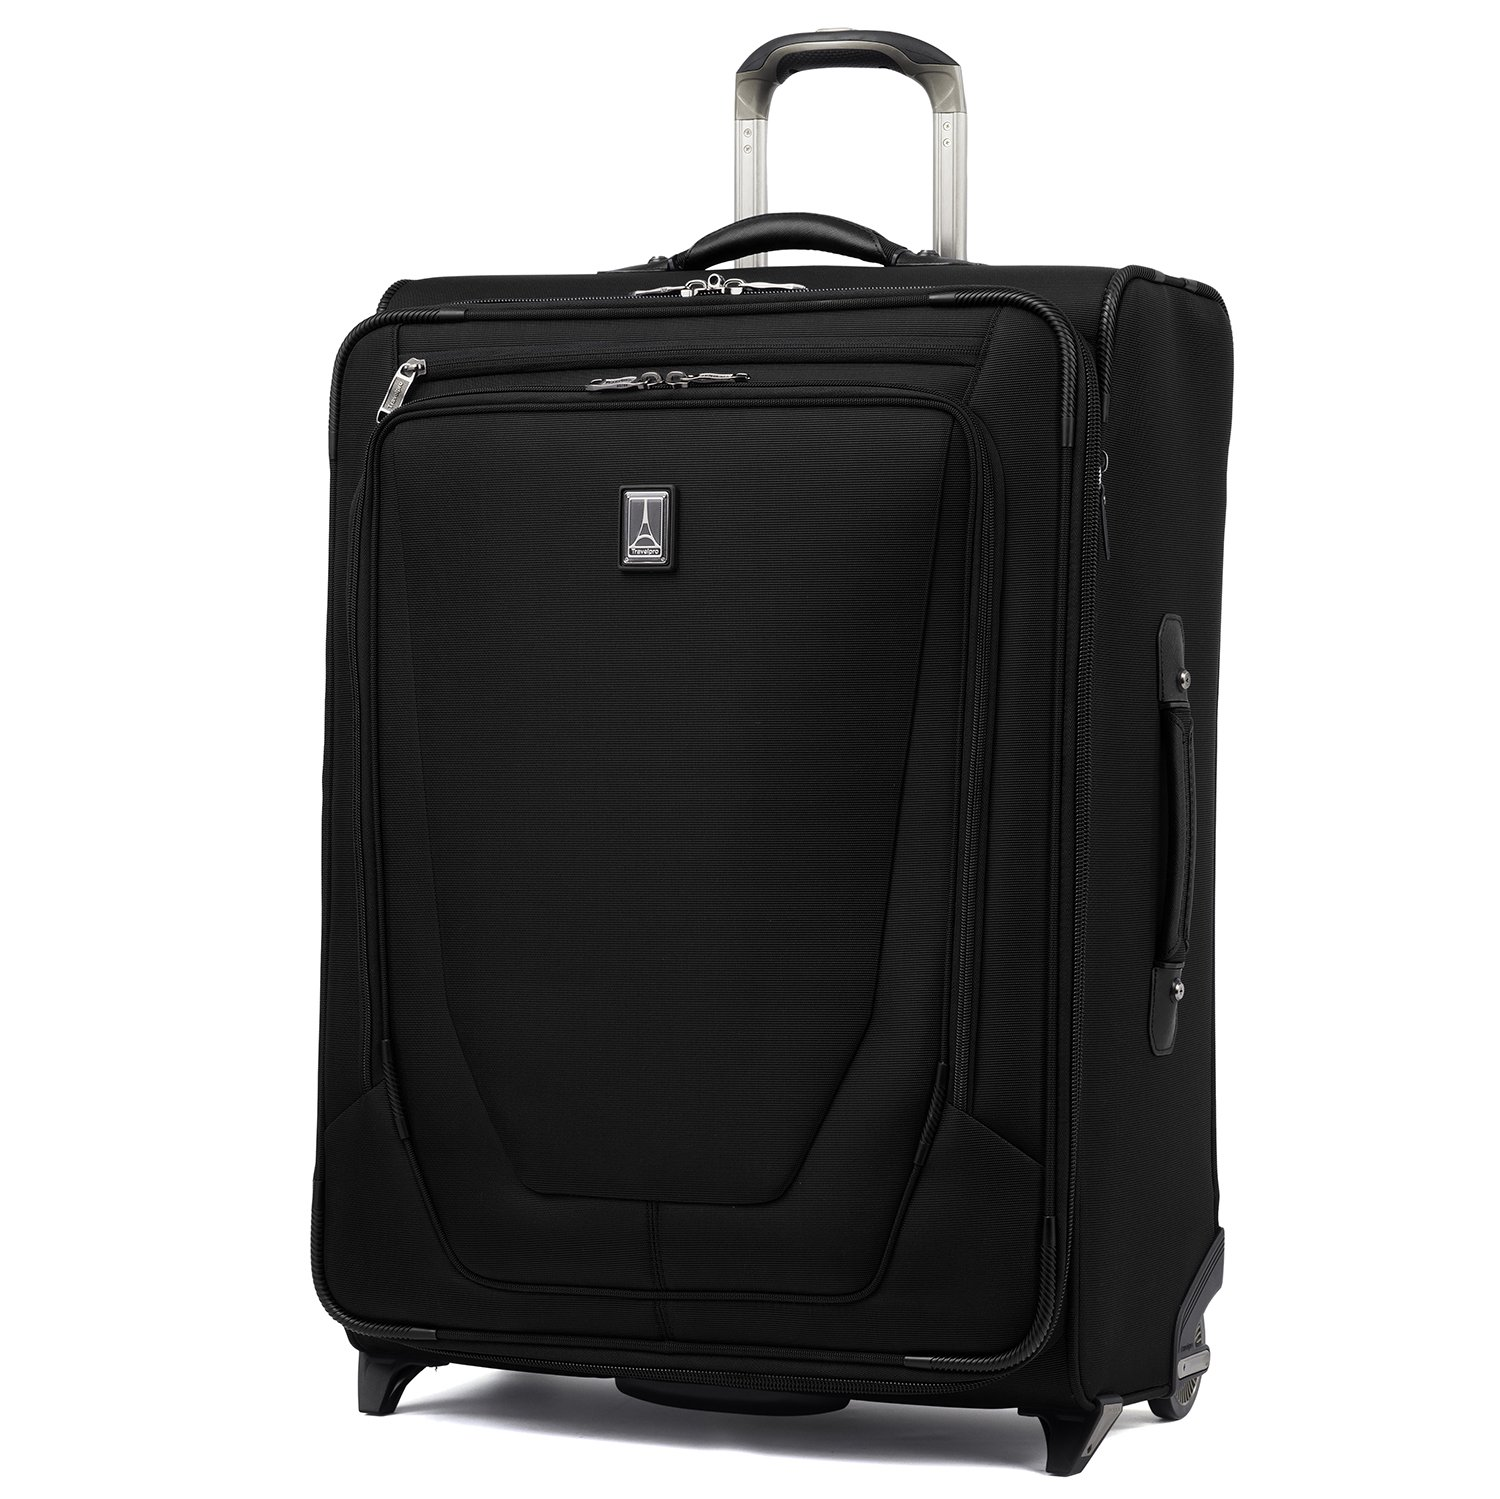 Travelpro Luggage Crew 11 26'' Expandable Rollaboard Suitcase w/Suiter, Black by Travelpro